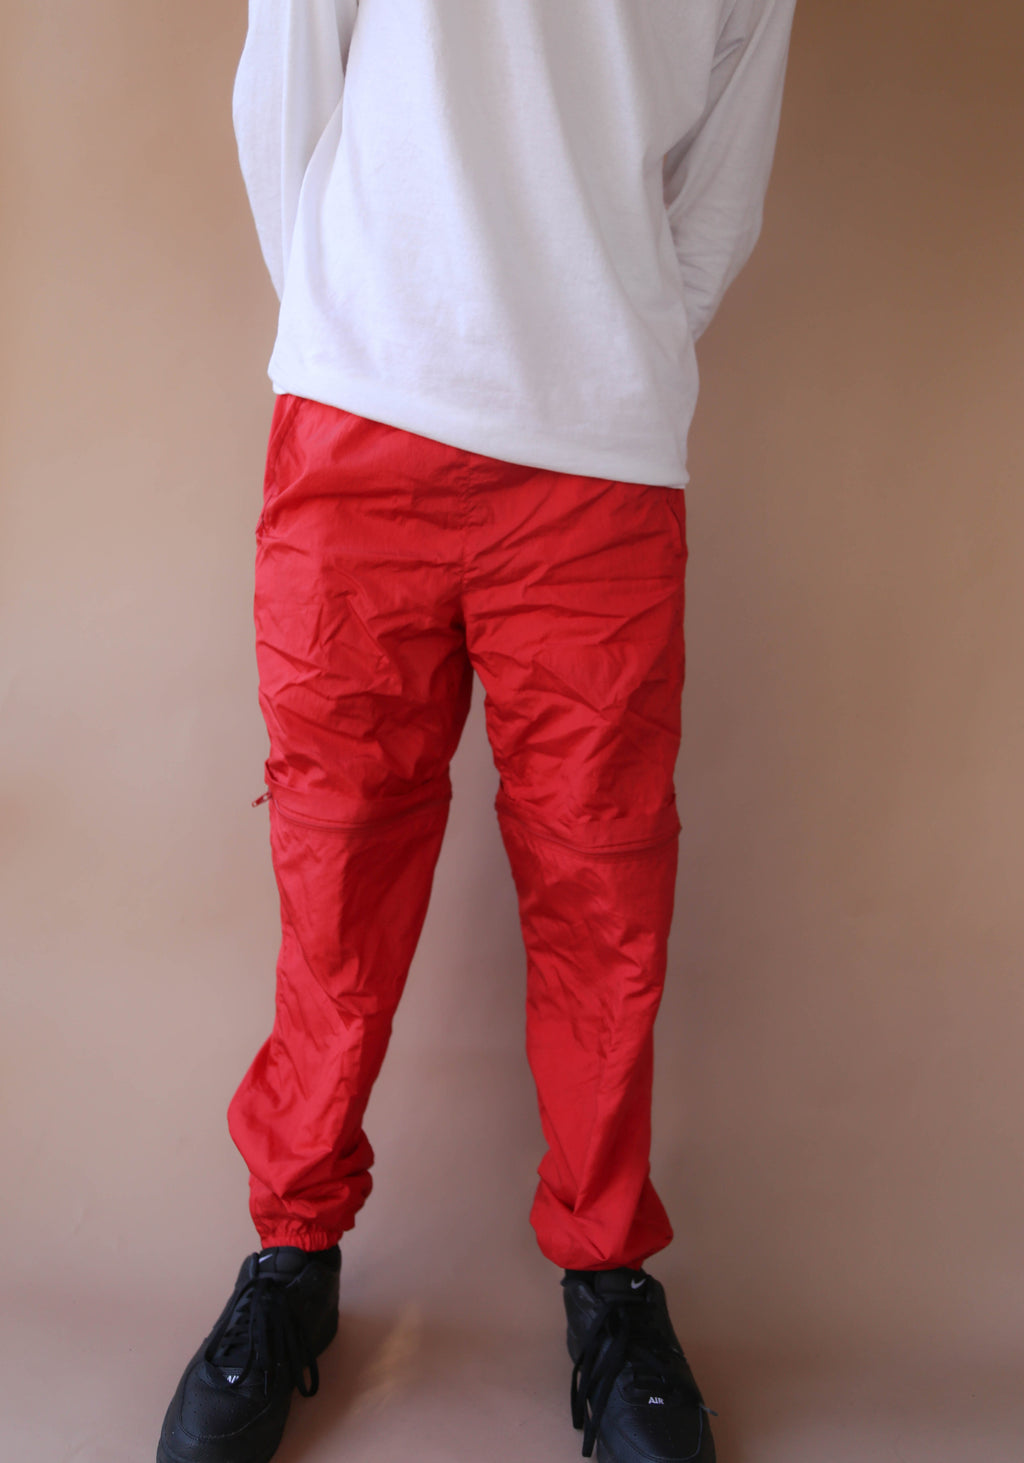 90´s Jogging Pants with removable Legs